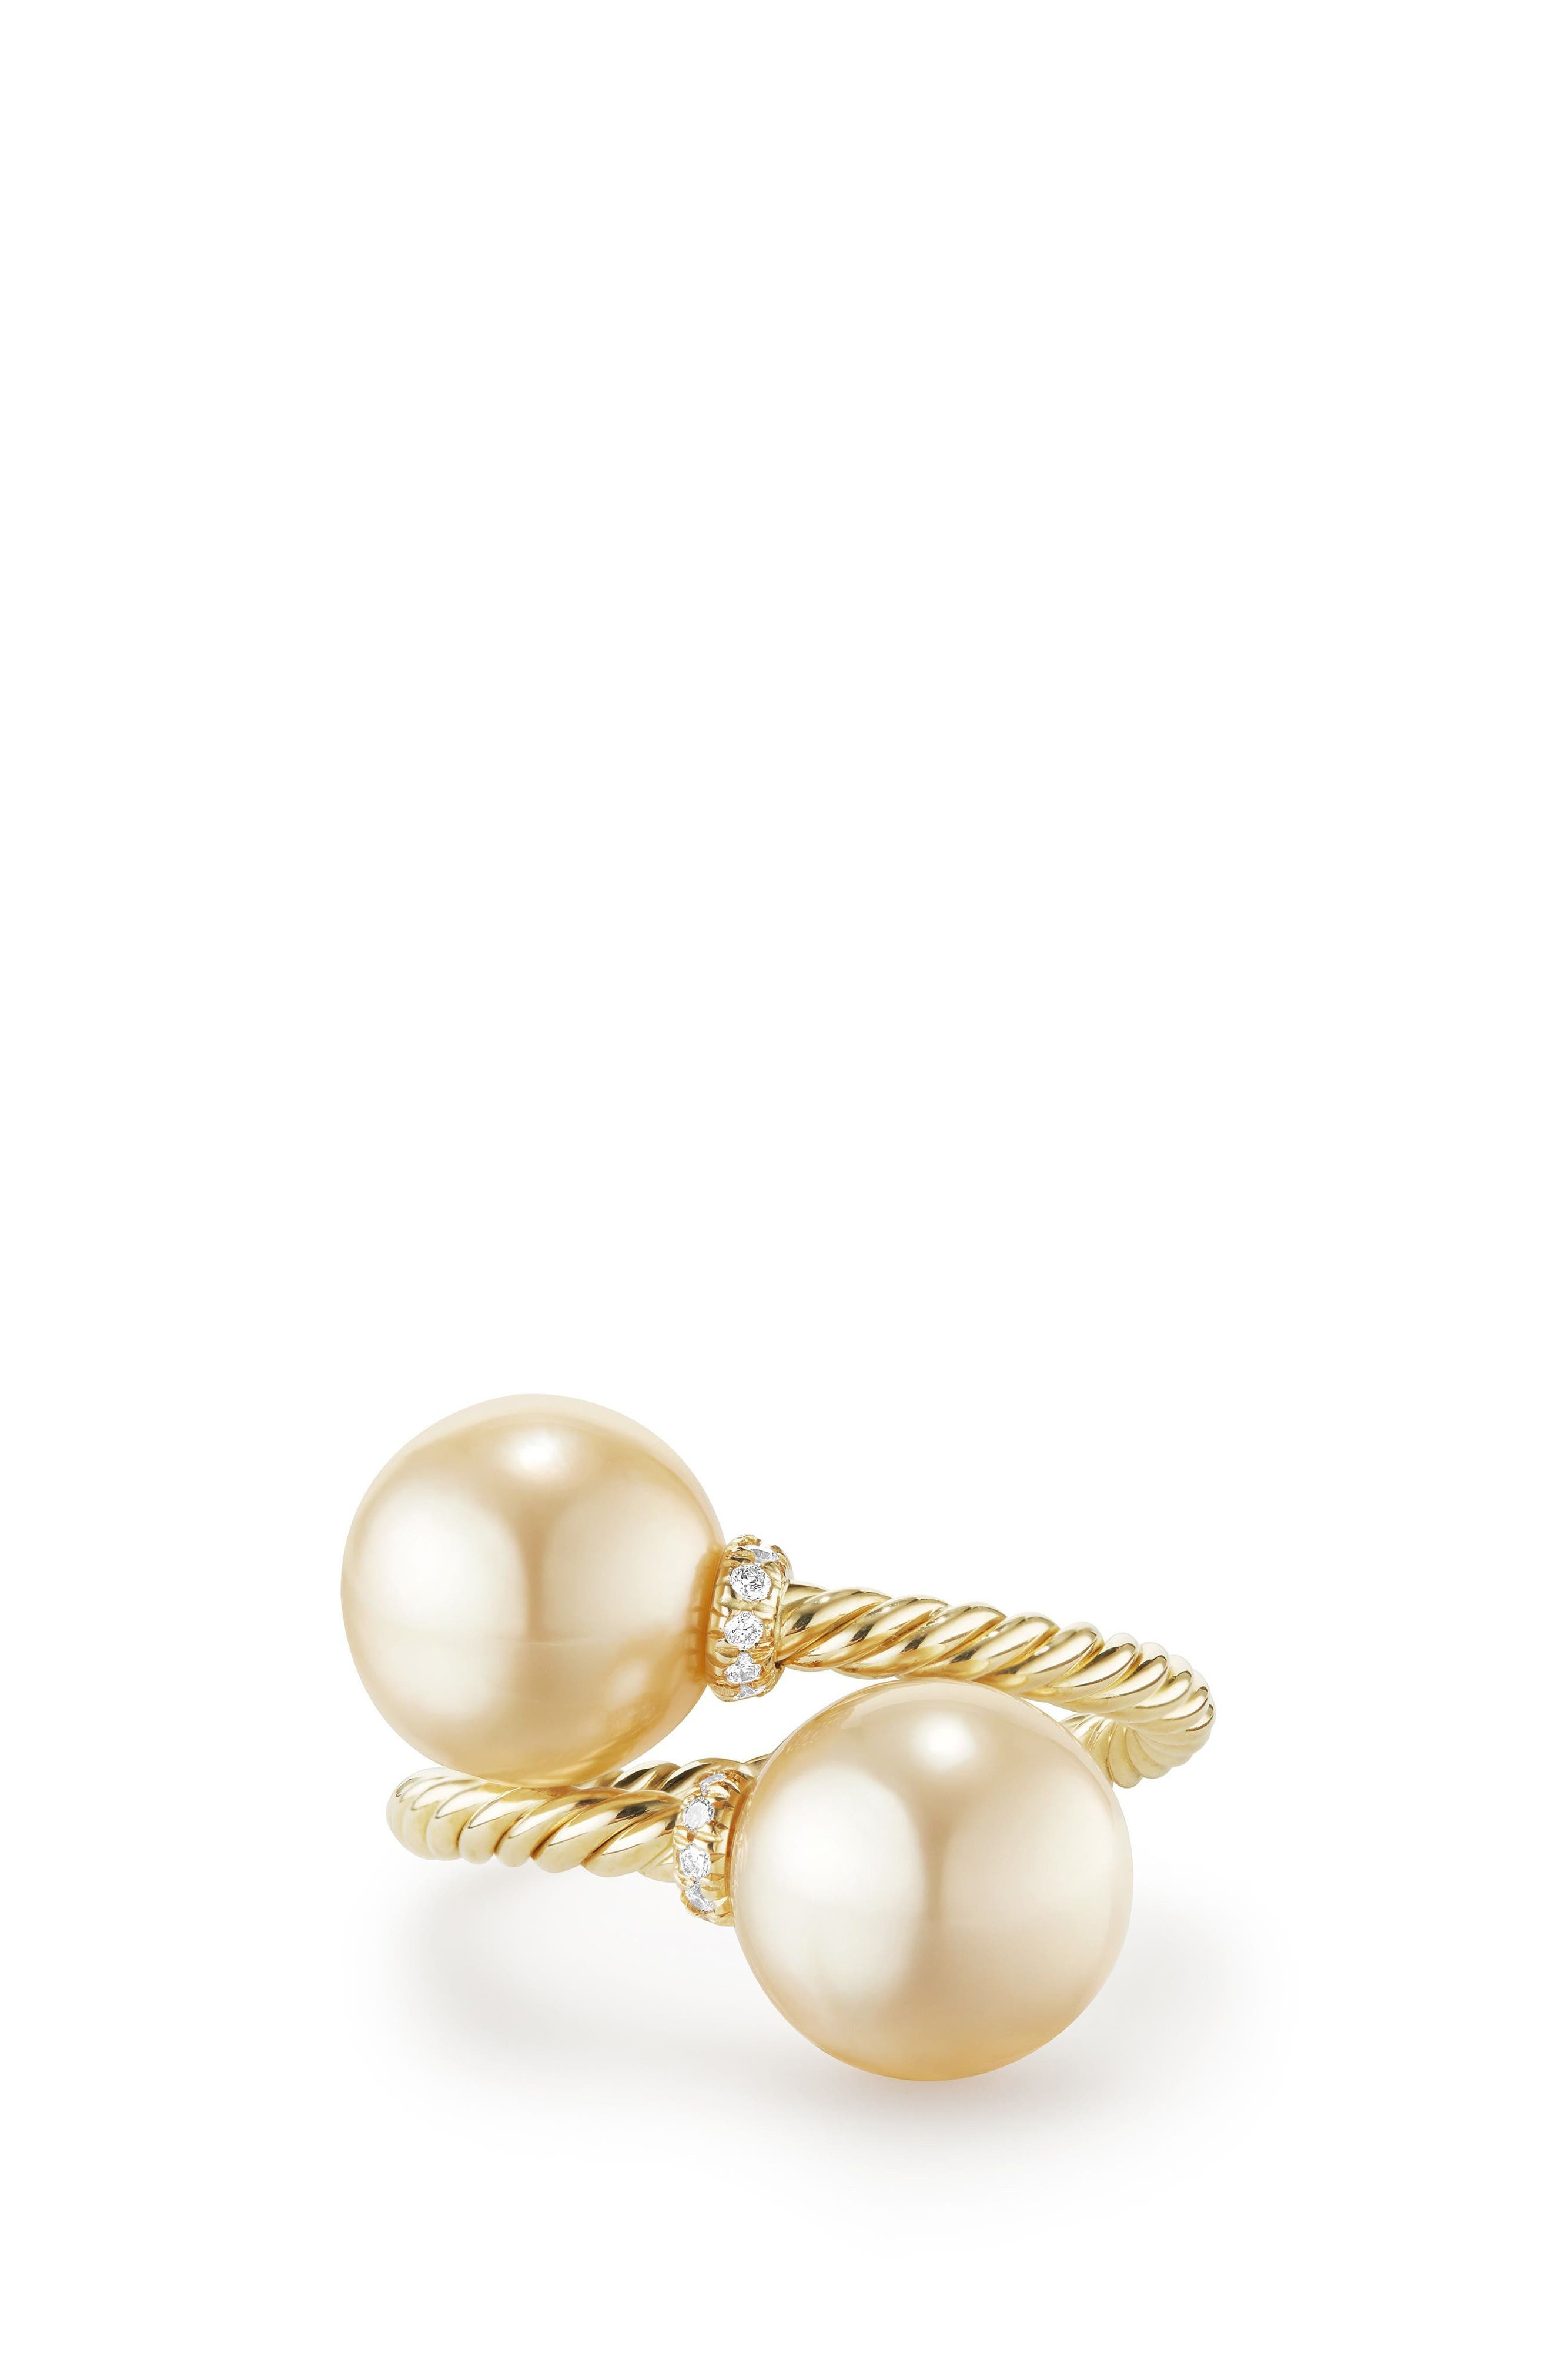 Solari Bypass Ring with Diamond in 18K Gold,                             Main thumbnail 1, color,                             Gold/ Diamond/ Yellow Pearl